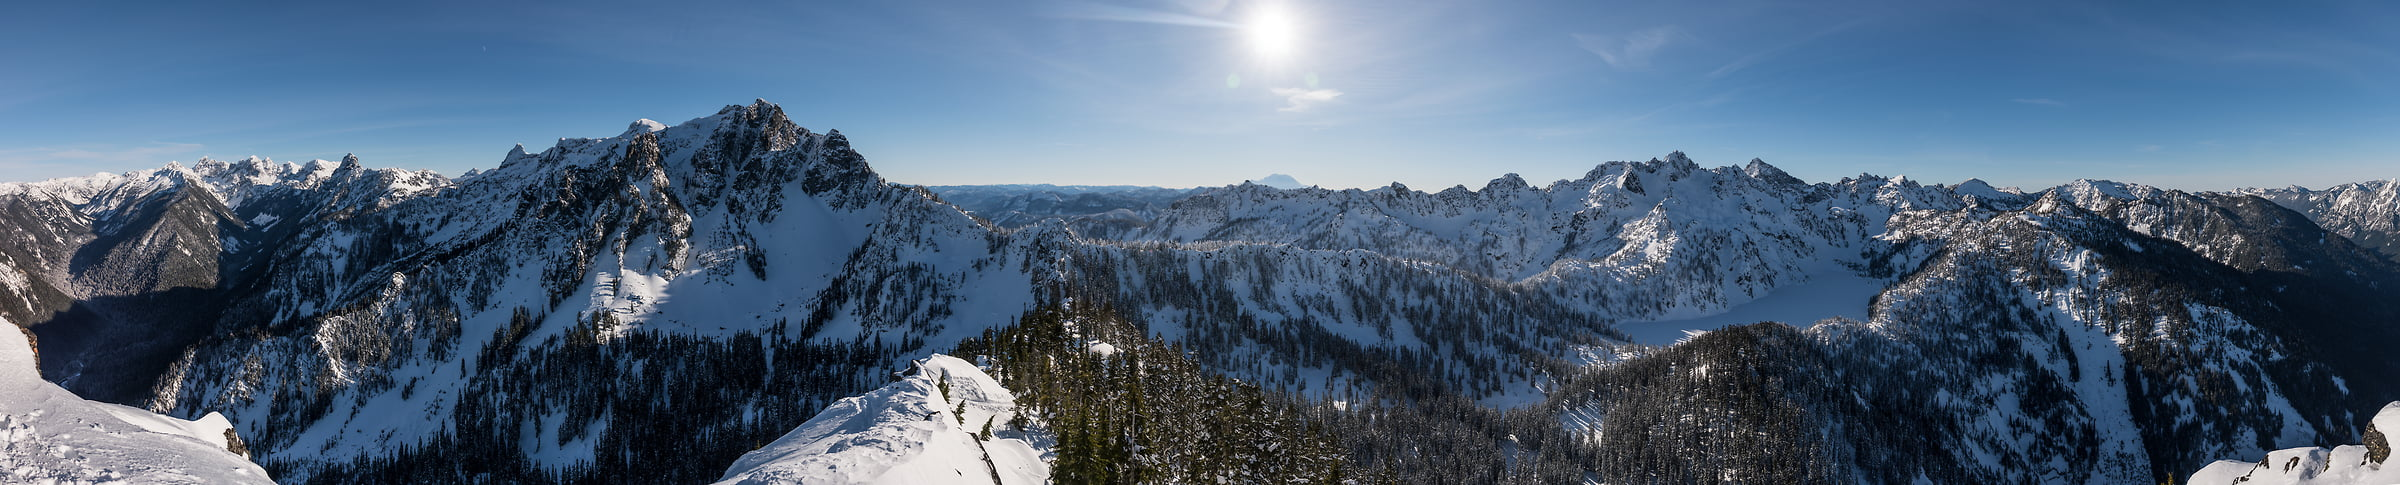 225 megapixels! An extremely high resolution, large-format VAST photo print of the Cascade Mountains from Avalanche Mountain in Snoqualmie Pass; fine art panorama landscape photo created by Scott Rinckenberger in Washington, USA